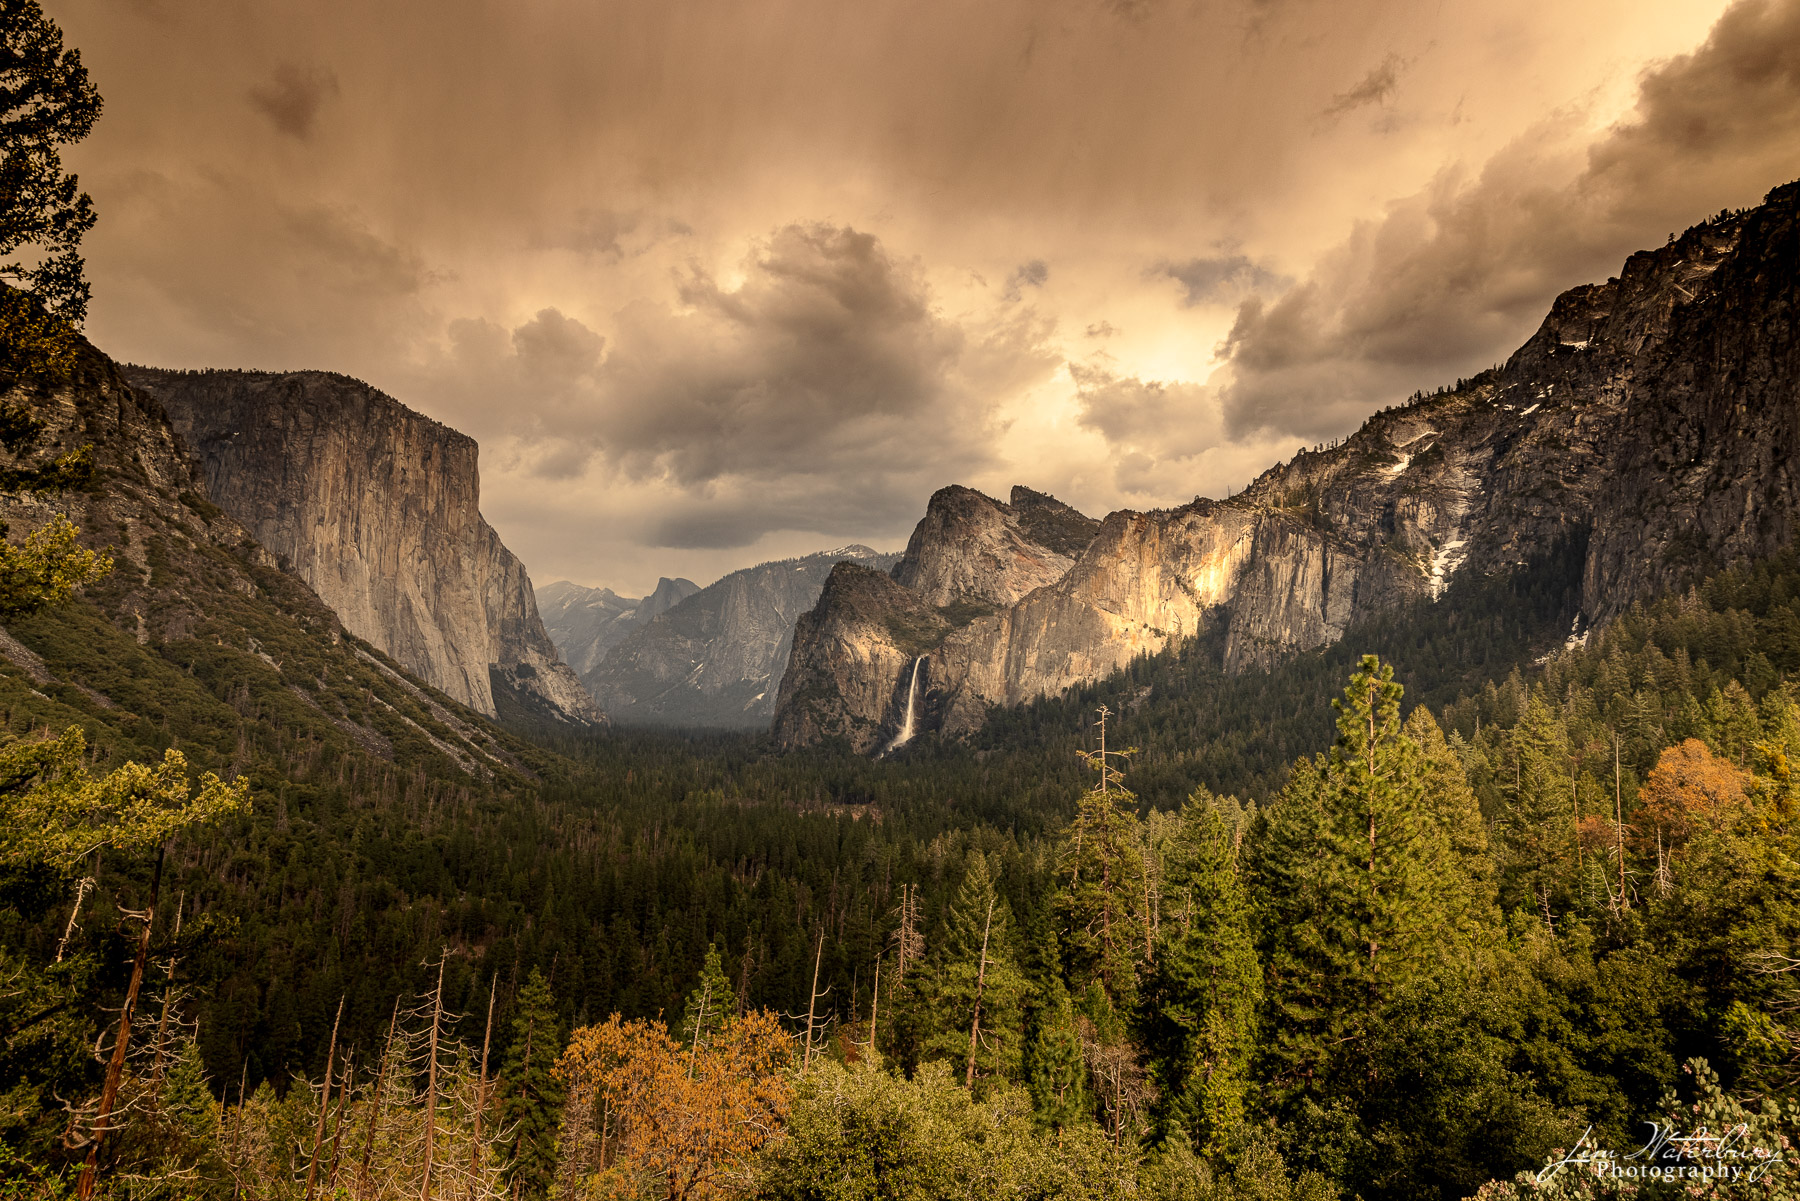 Tunnel View (Inspiration Point) after a late afternoon clearing thunderstorm